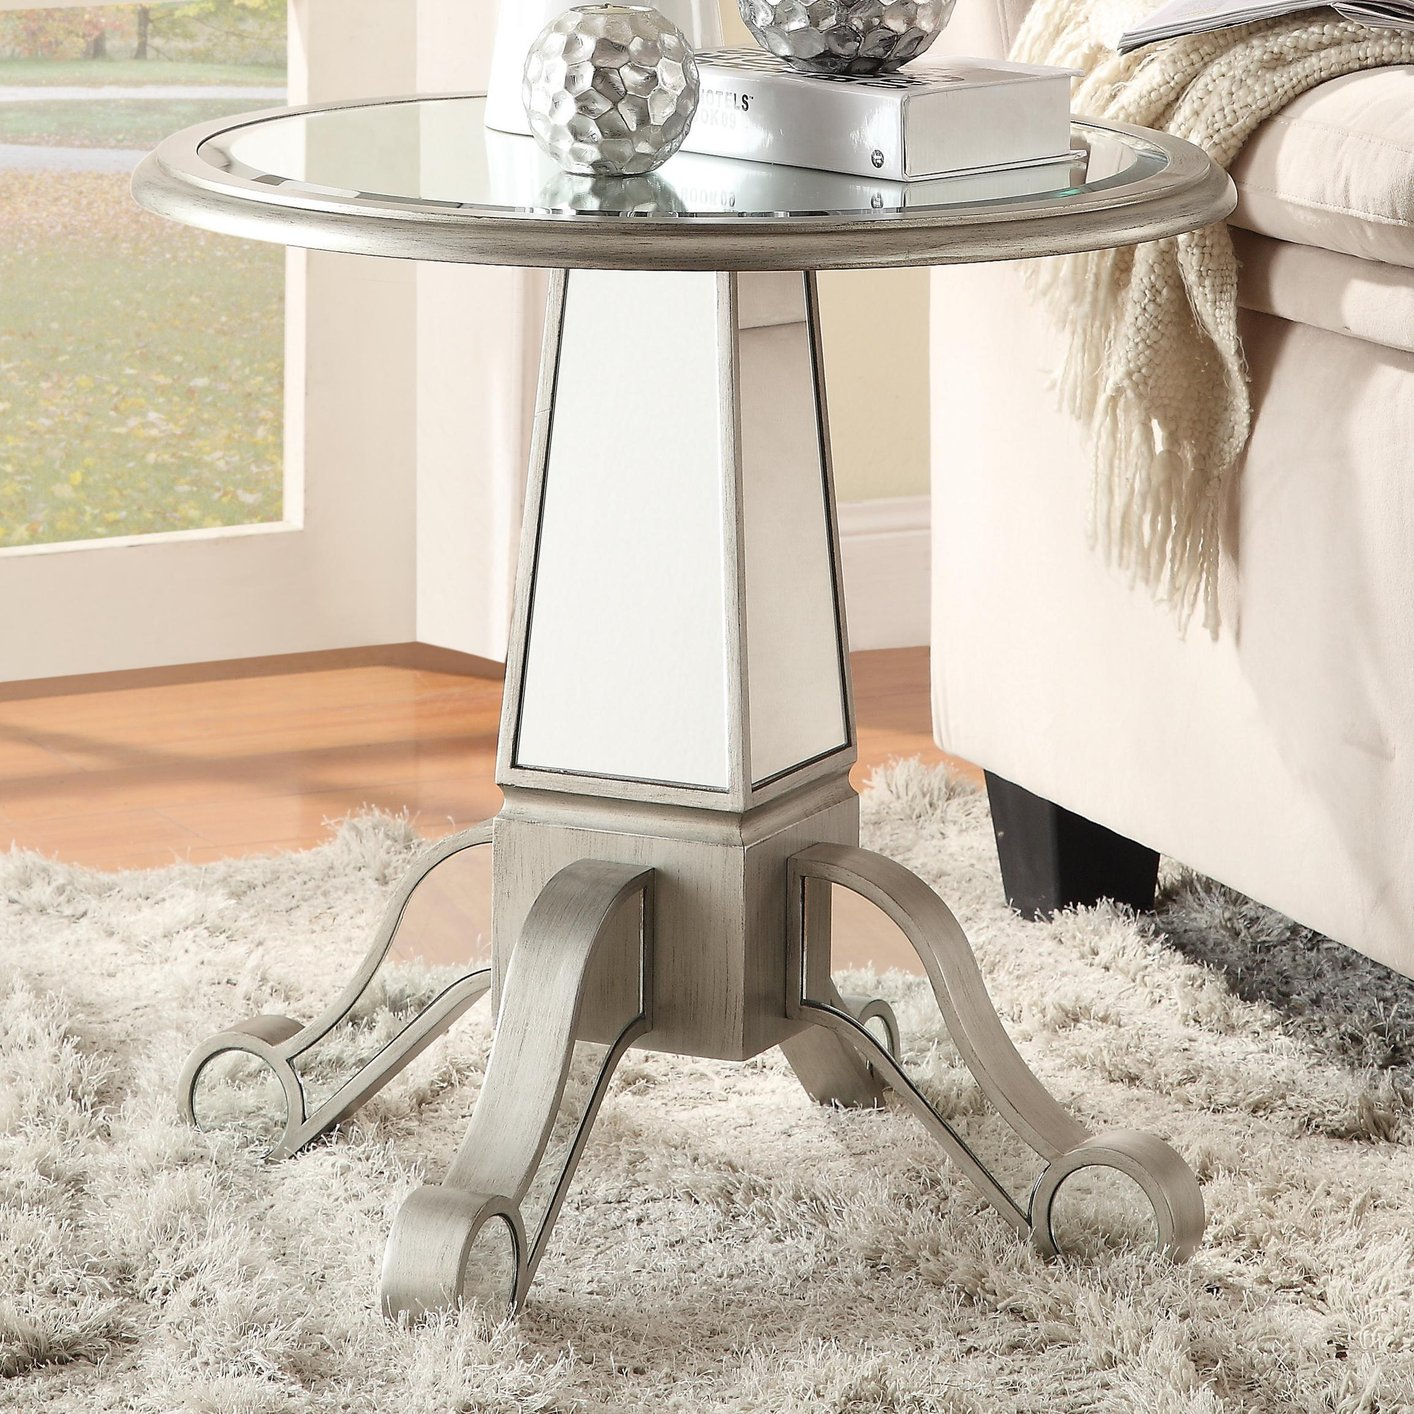 delectable silver glass end tables weeknd round and recall center console weddings top outdo chairs polokwane centerpieces room table living argos furniture black gauteng hire